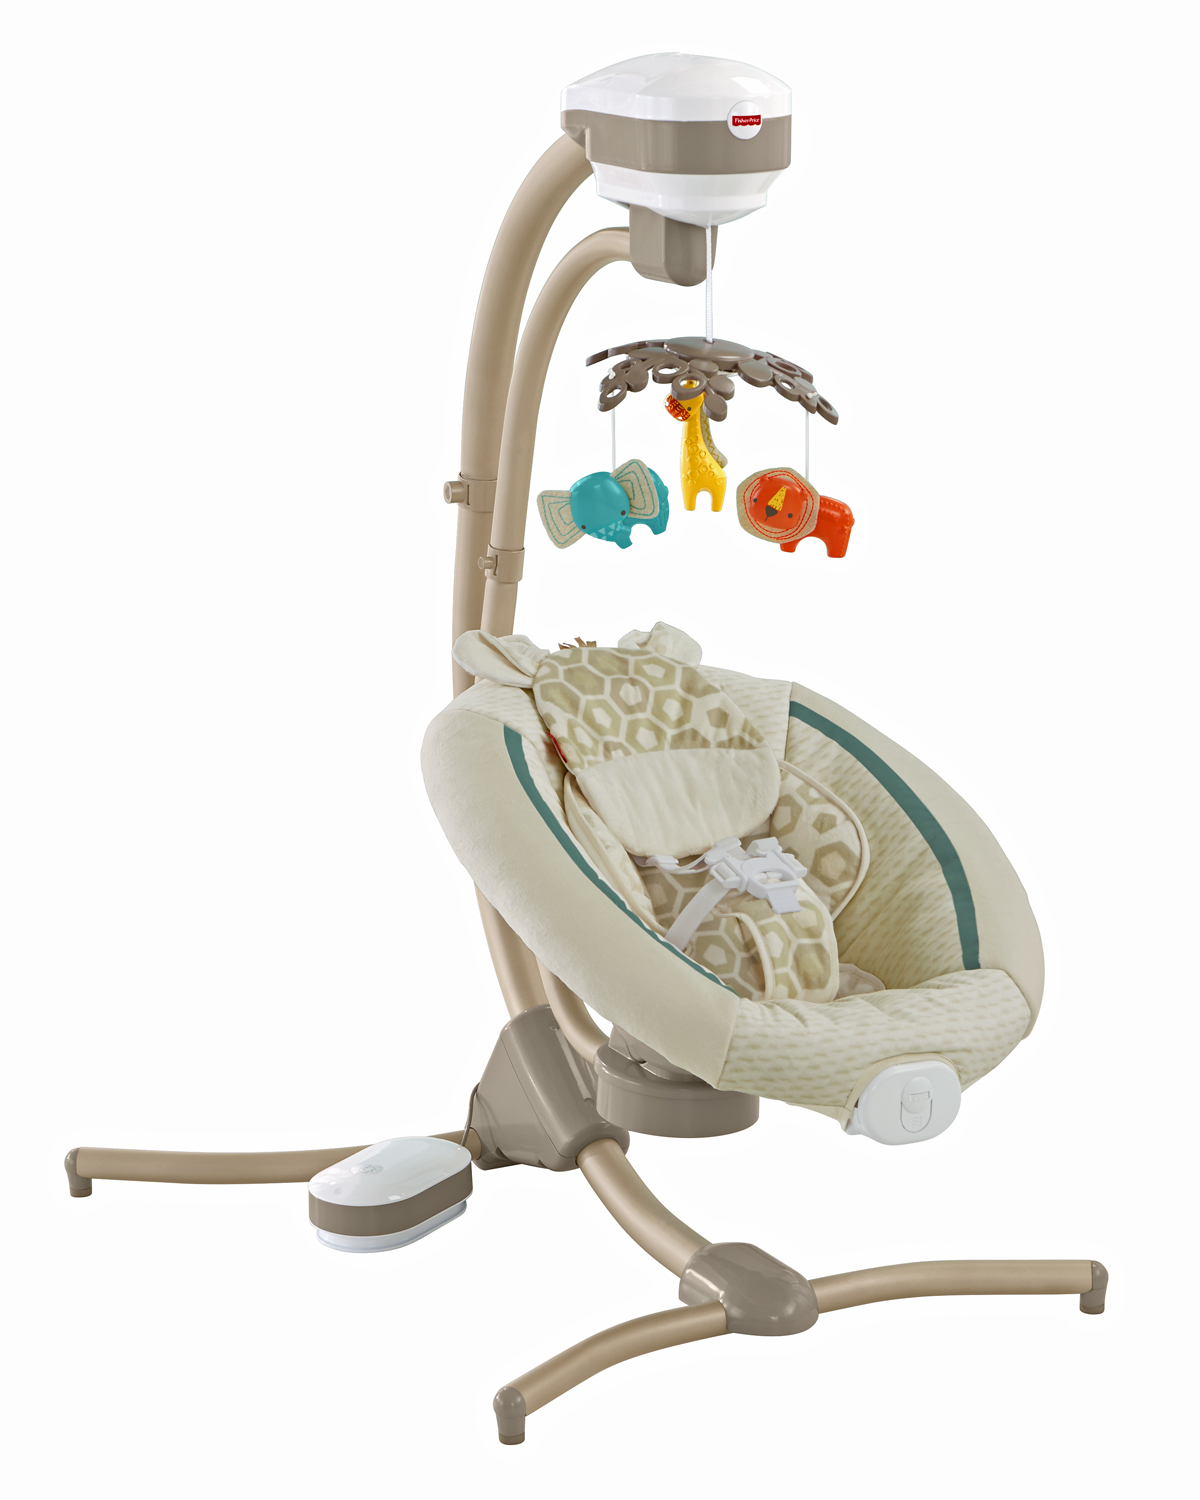 baby boppy chair recall cover hire shrewsbury mattel and fisher price consumer relations support center